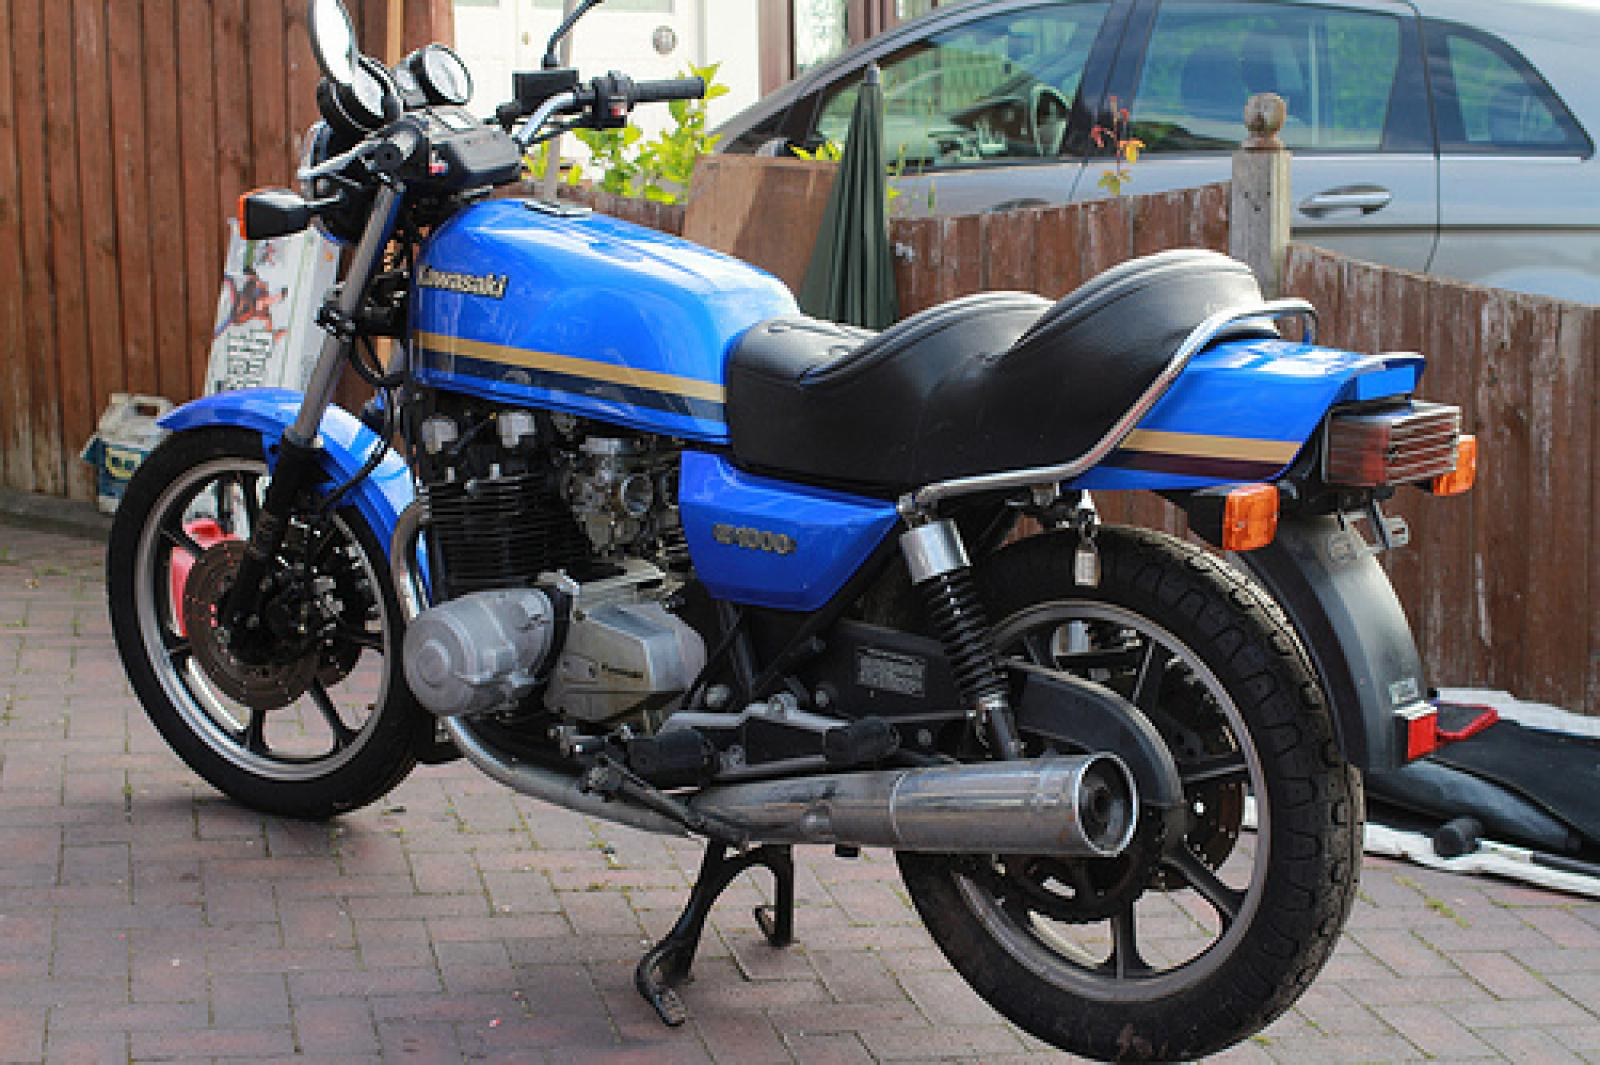 1983 Kawasaki Z1000J is listed For sale on ClassicDigest